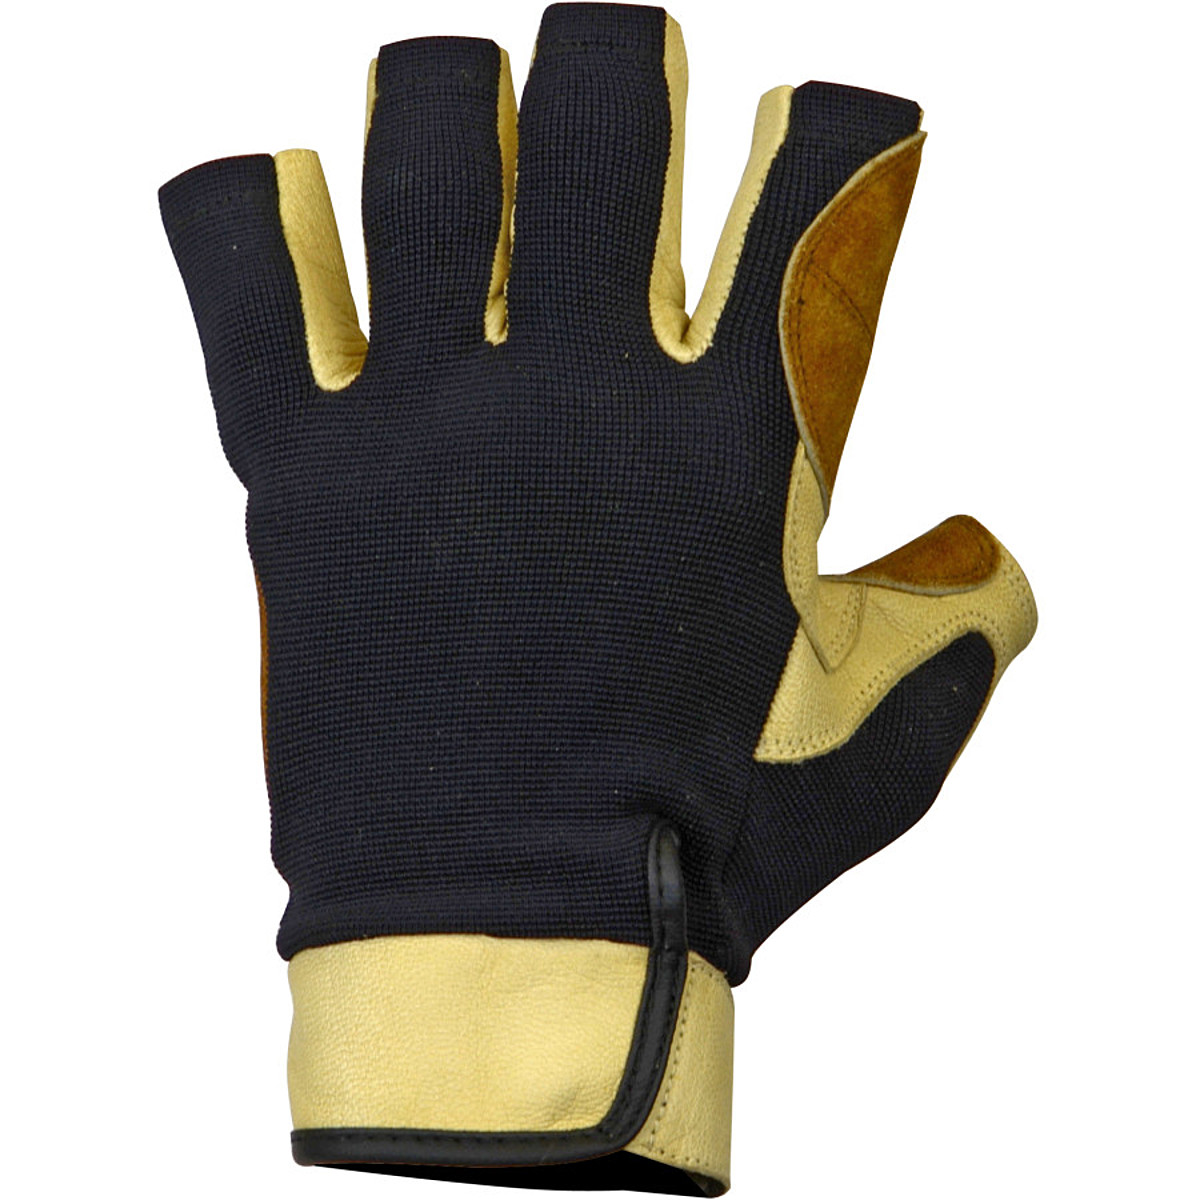 Metolius Grip Glove 3/4